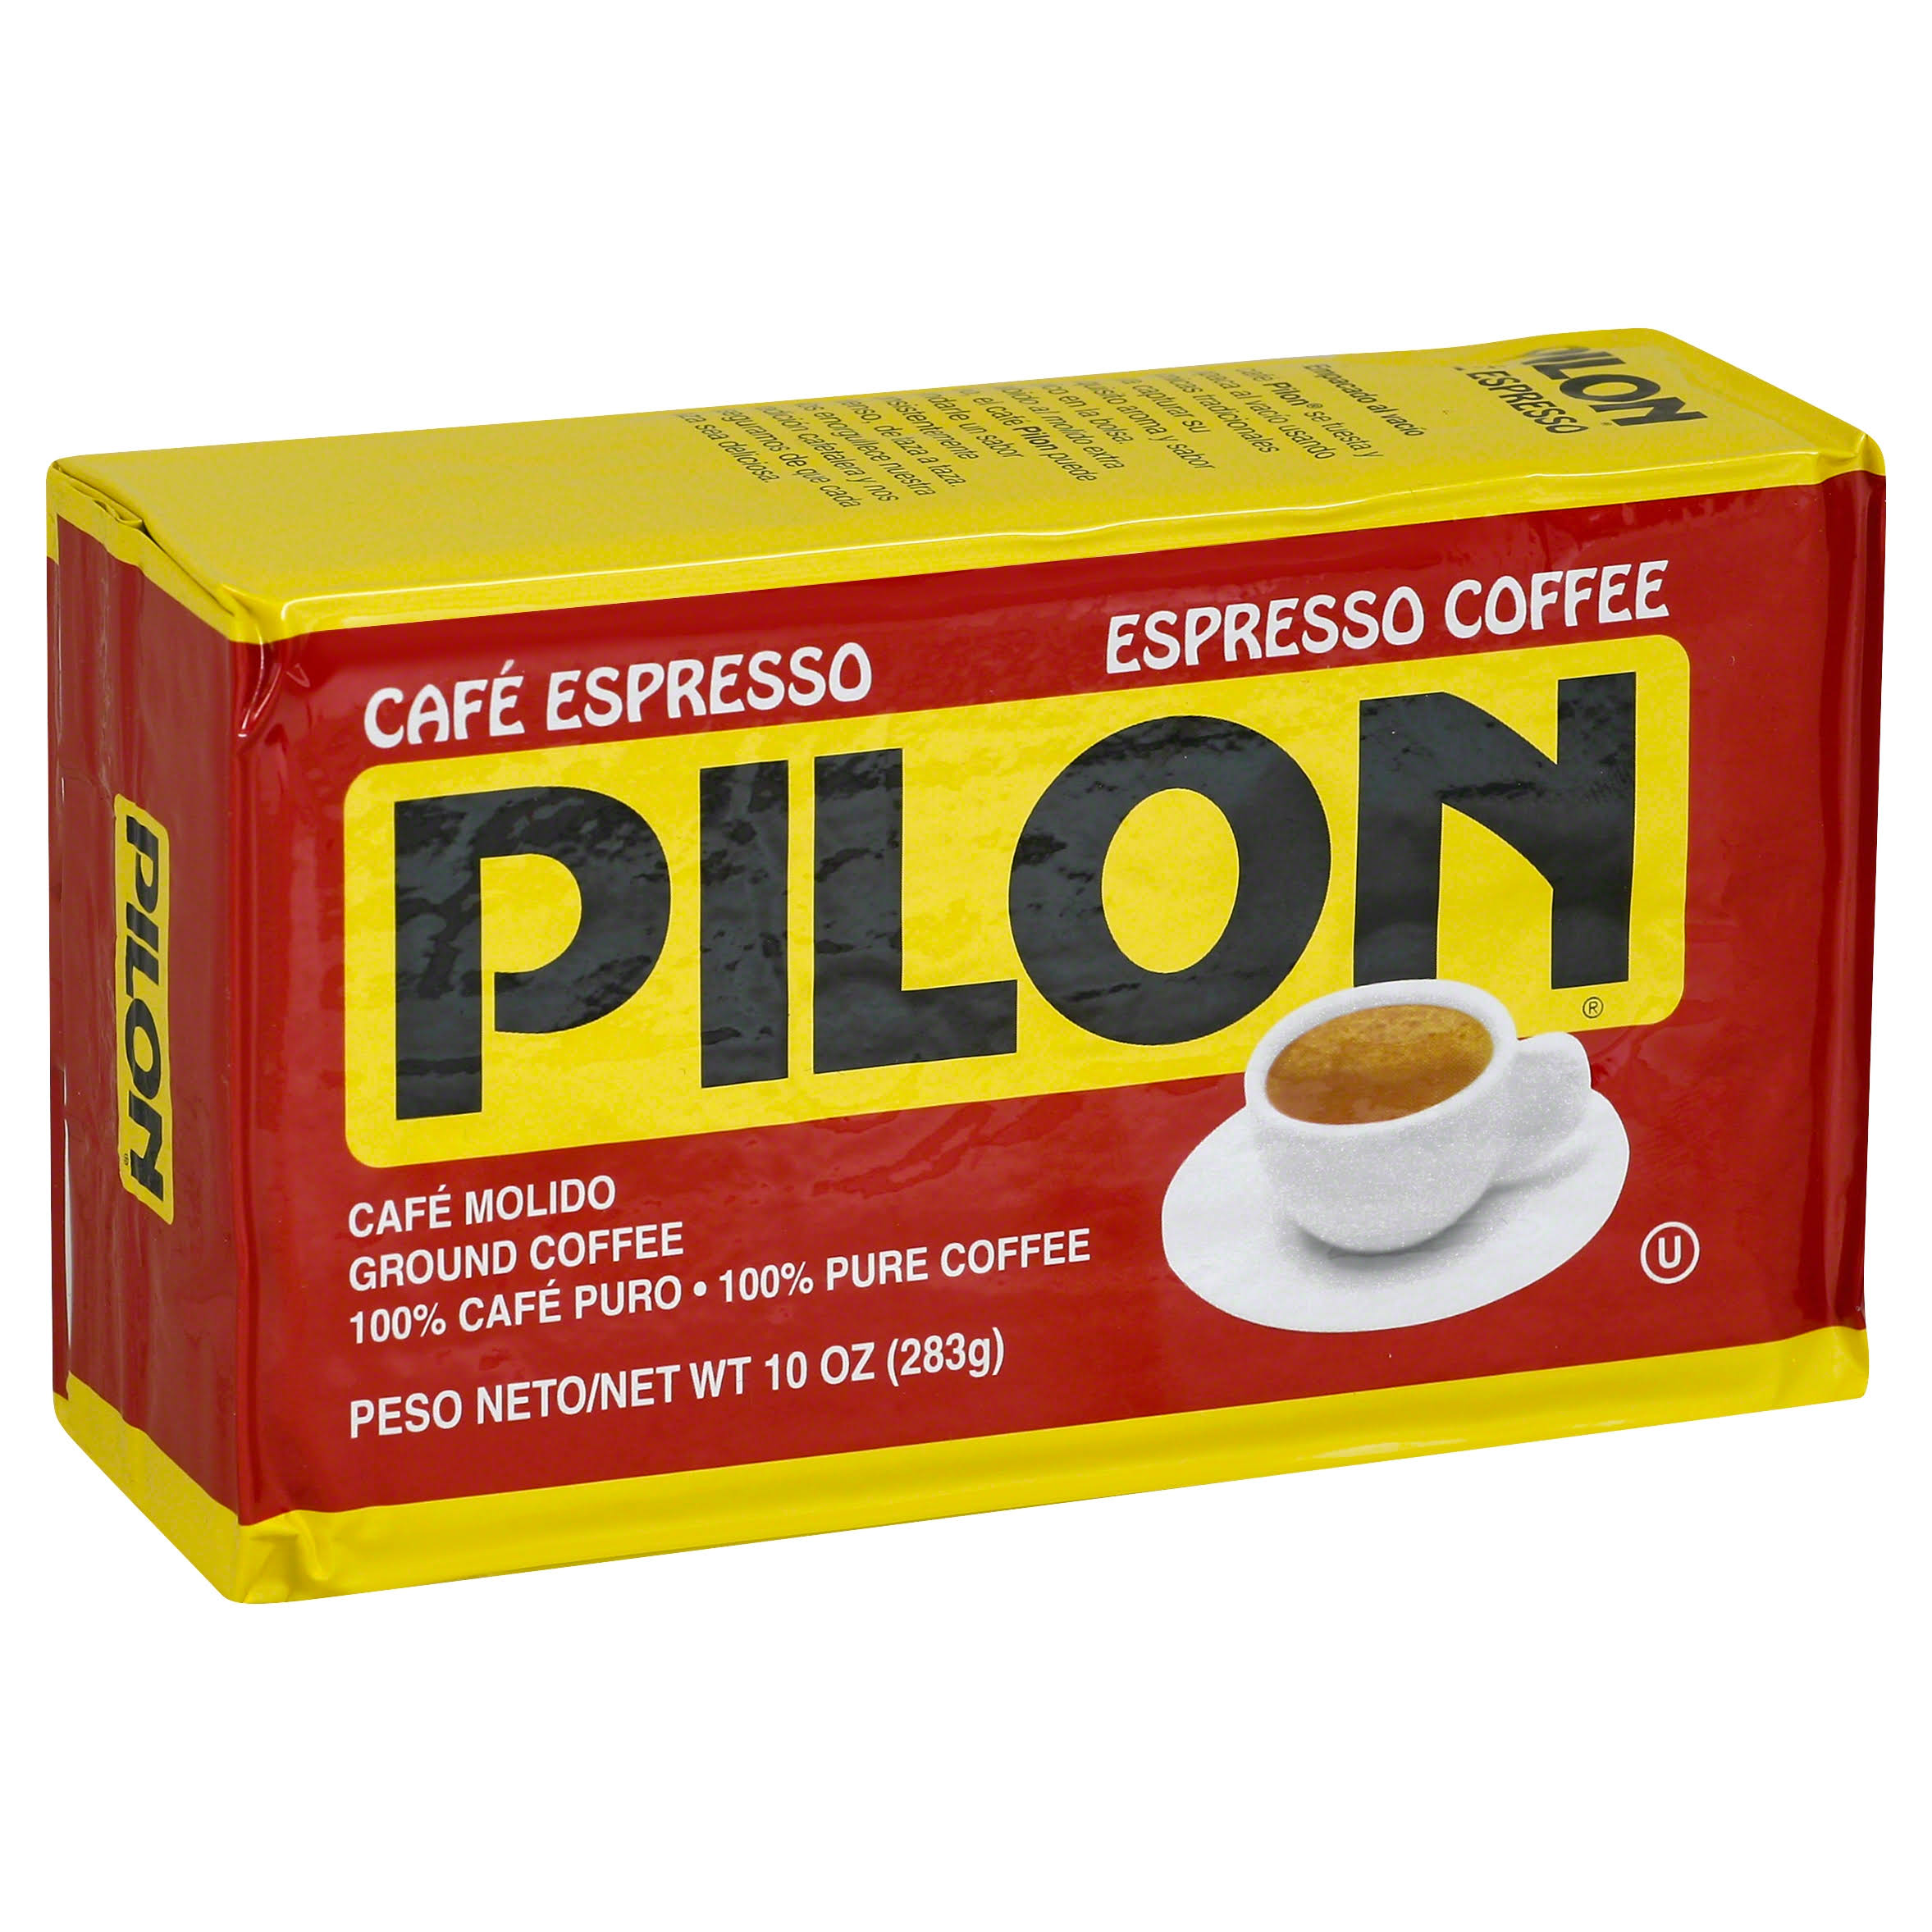 Pilon Espresso Ground Coffee - 10oz